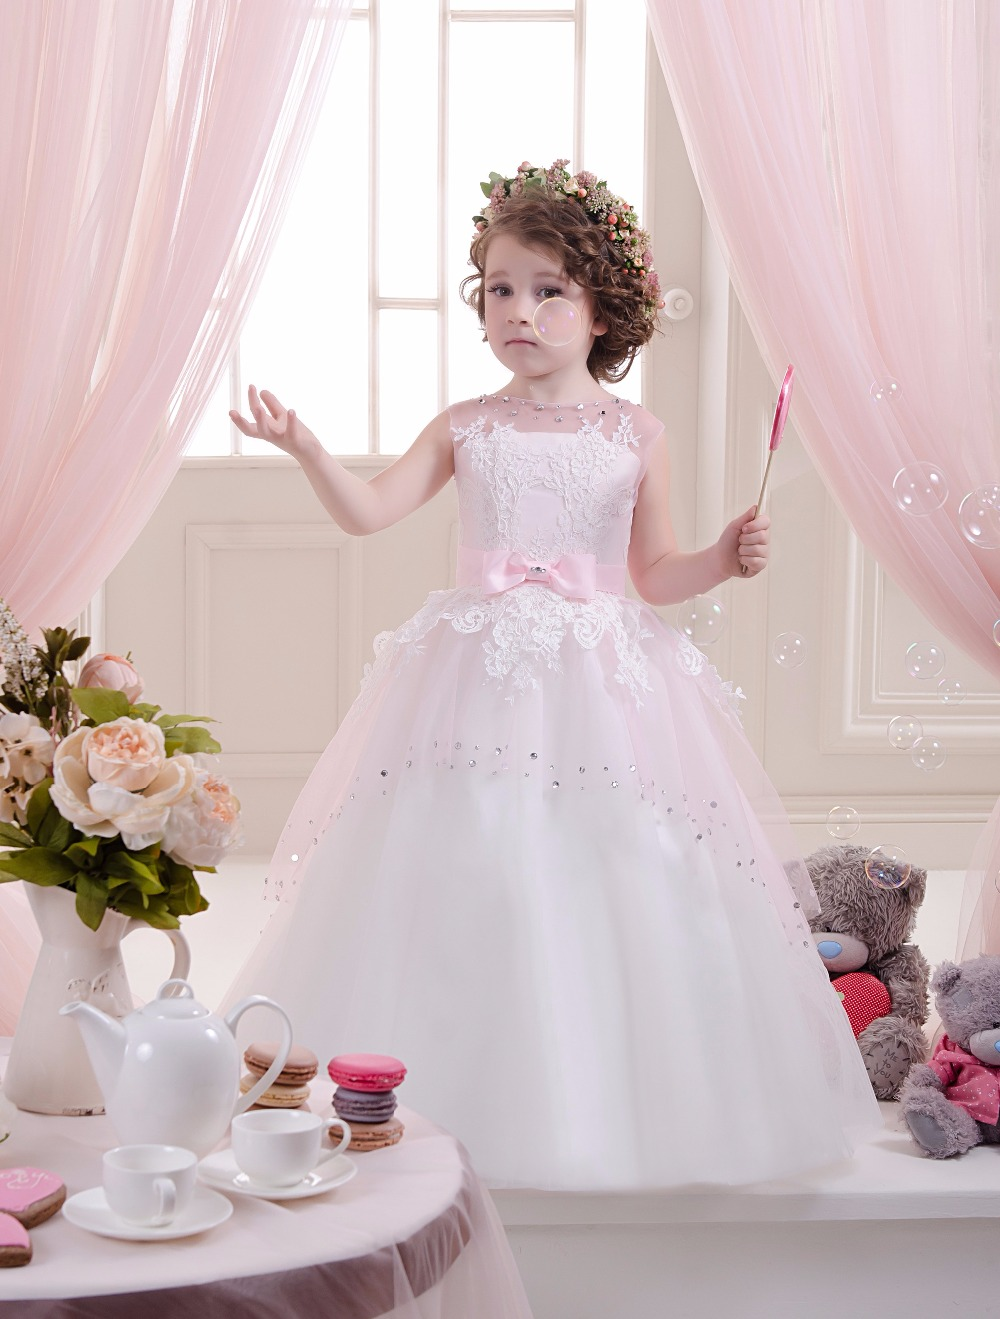 Sleeveless Holy Communion Infant Kids Pink Floor Length Lace Satin Gowns 0-12 Year Flower Girls Kids Dresses with Bow Belt